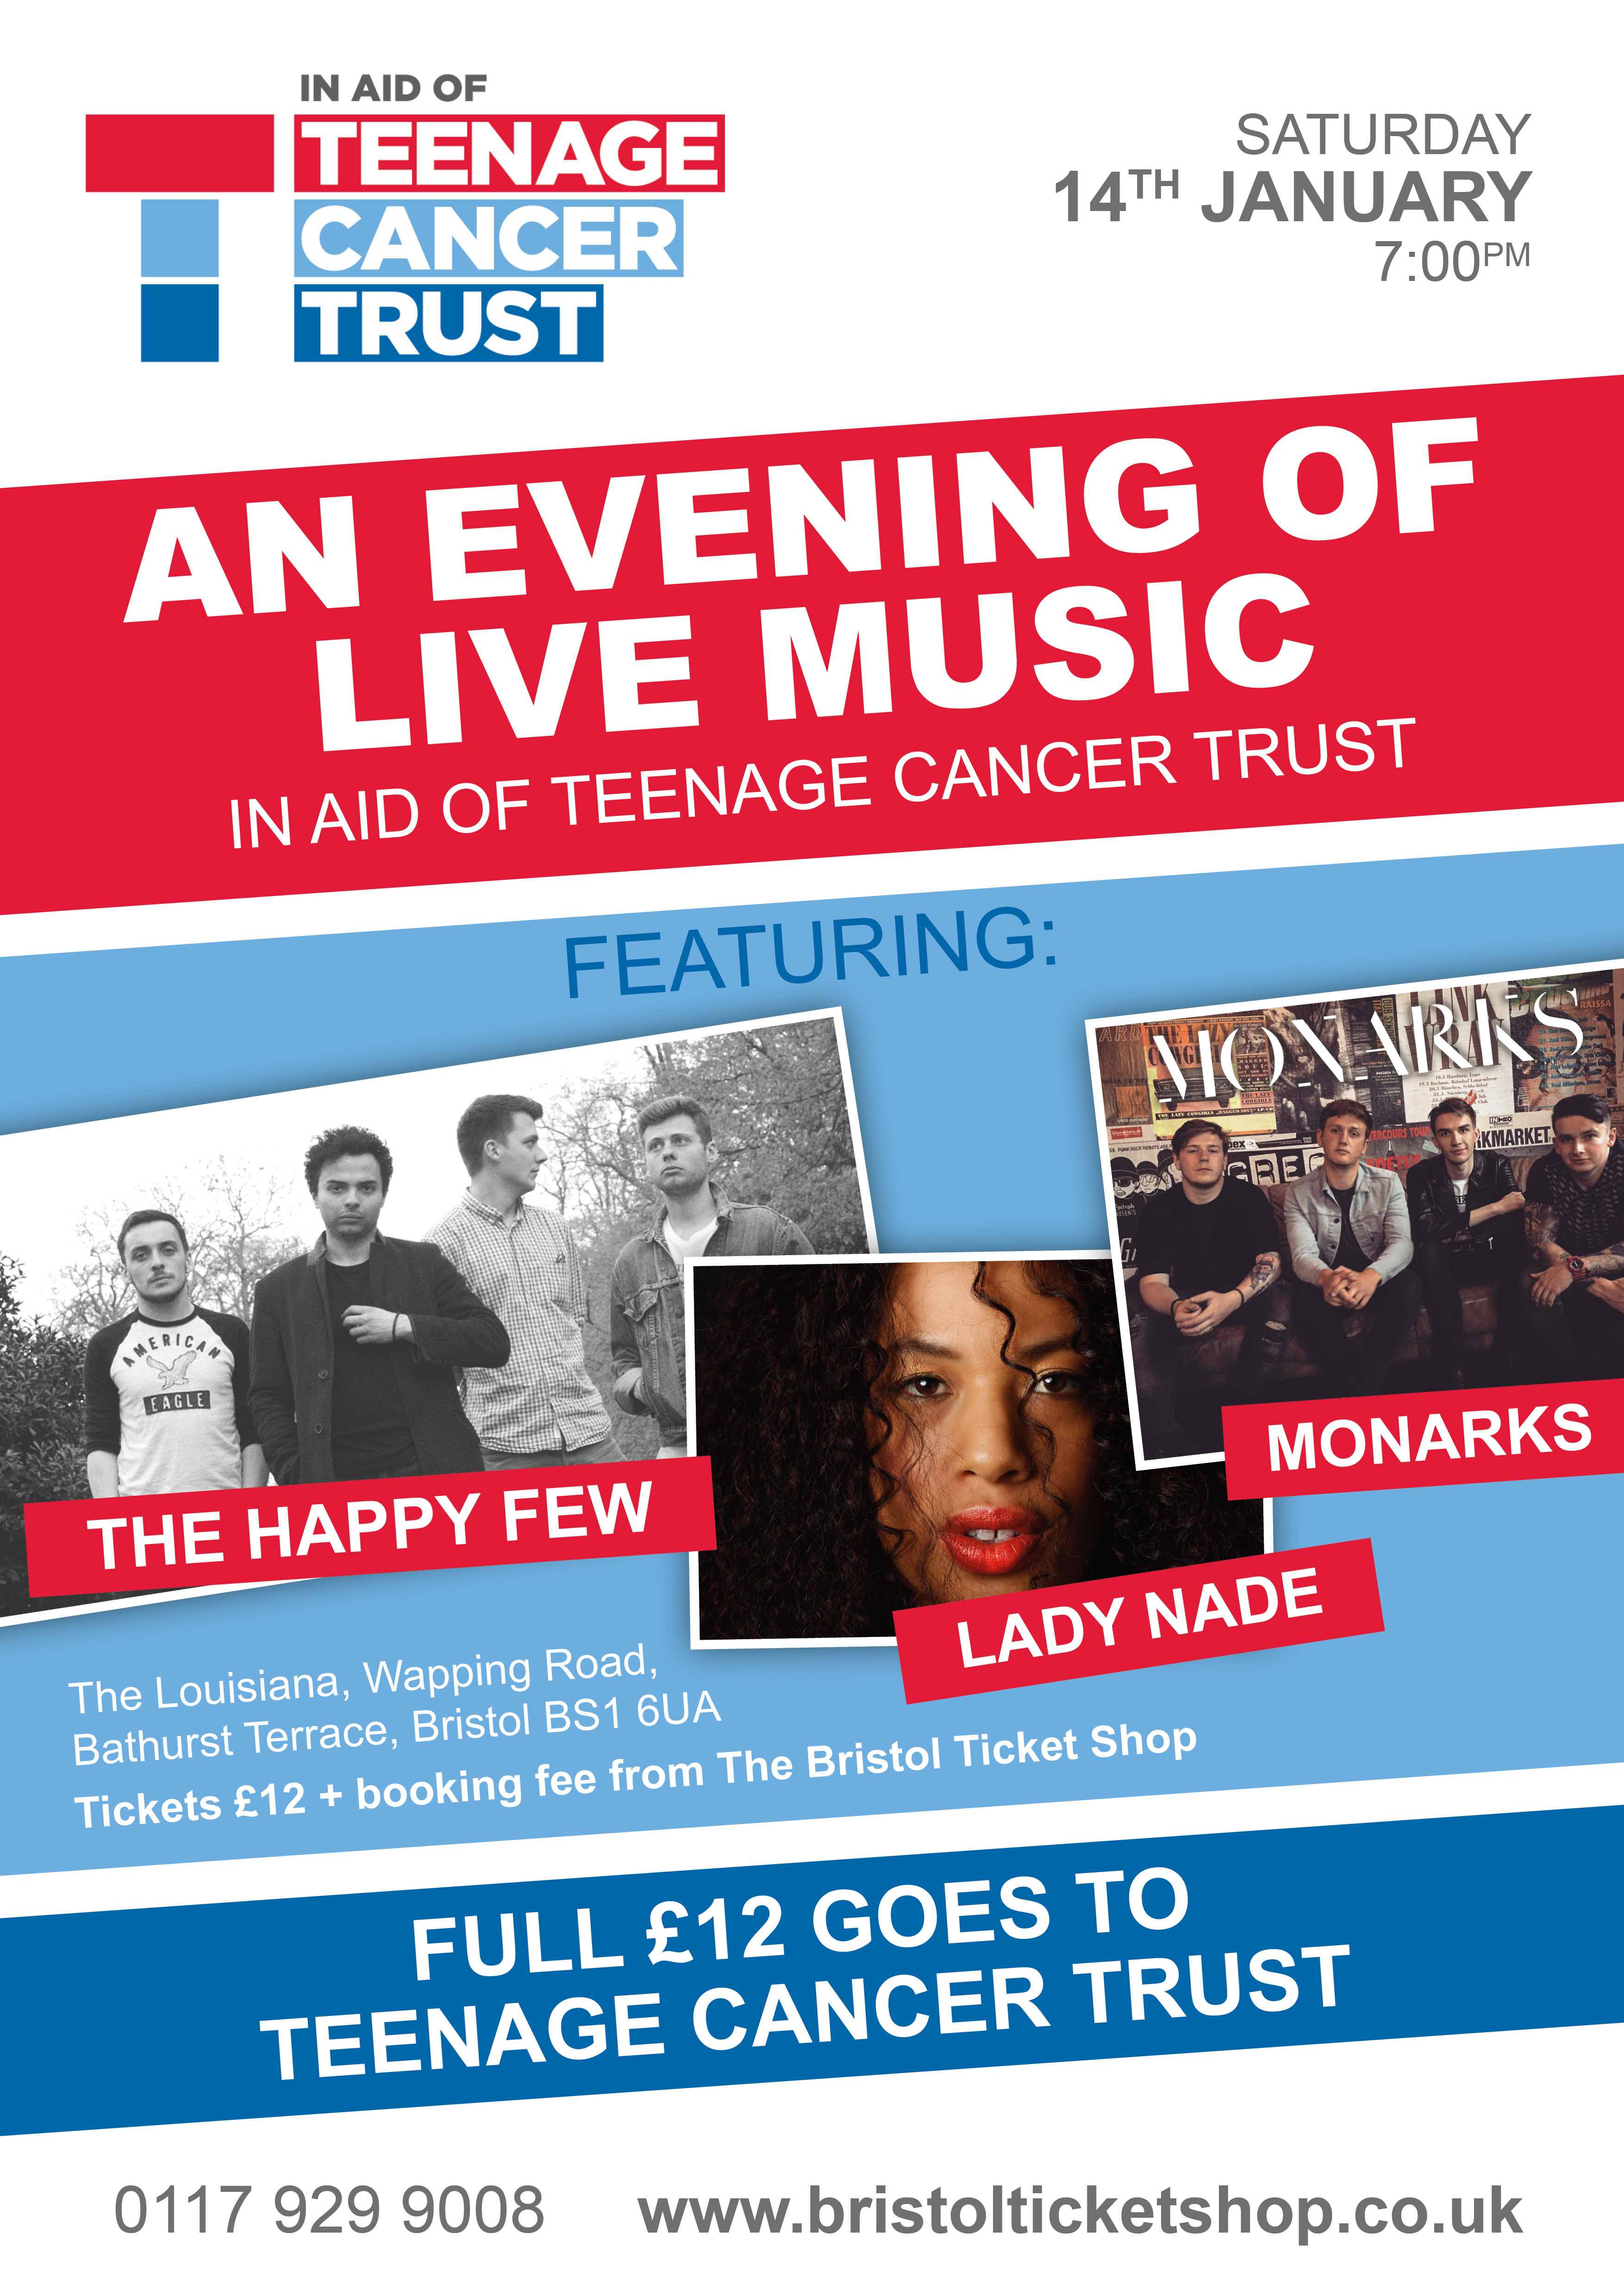 Live Music at The Louisiana in aid of the Teenage Cancer Trust